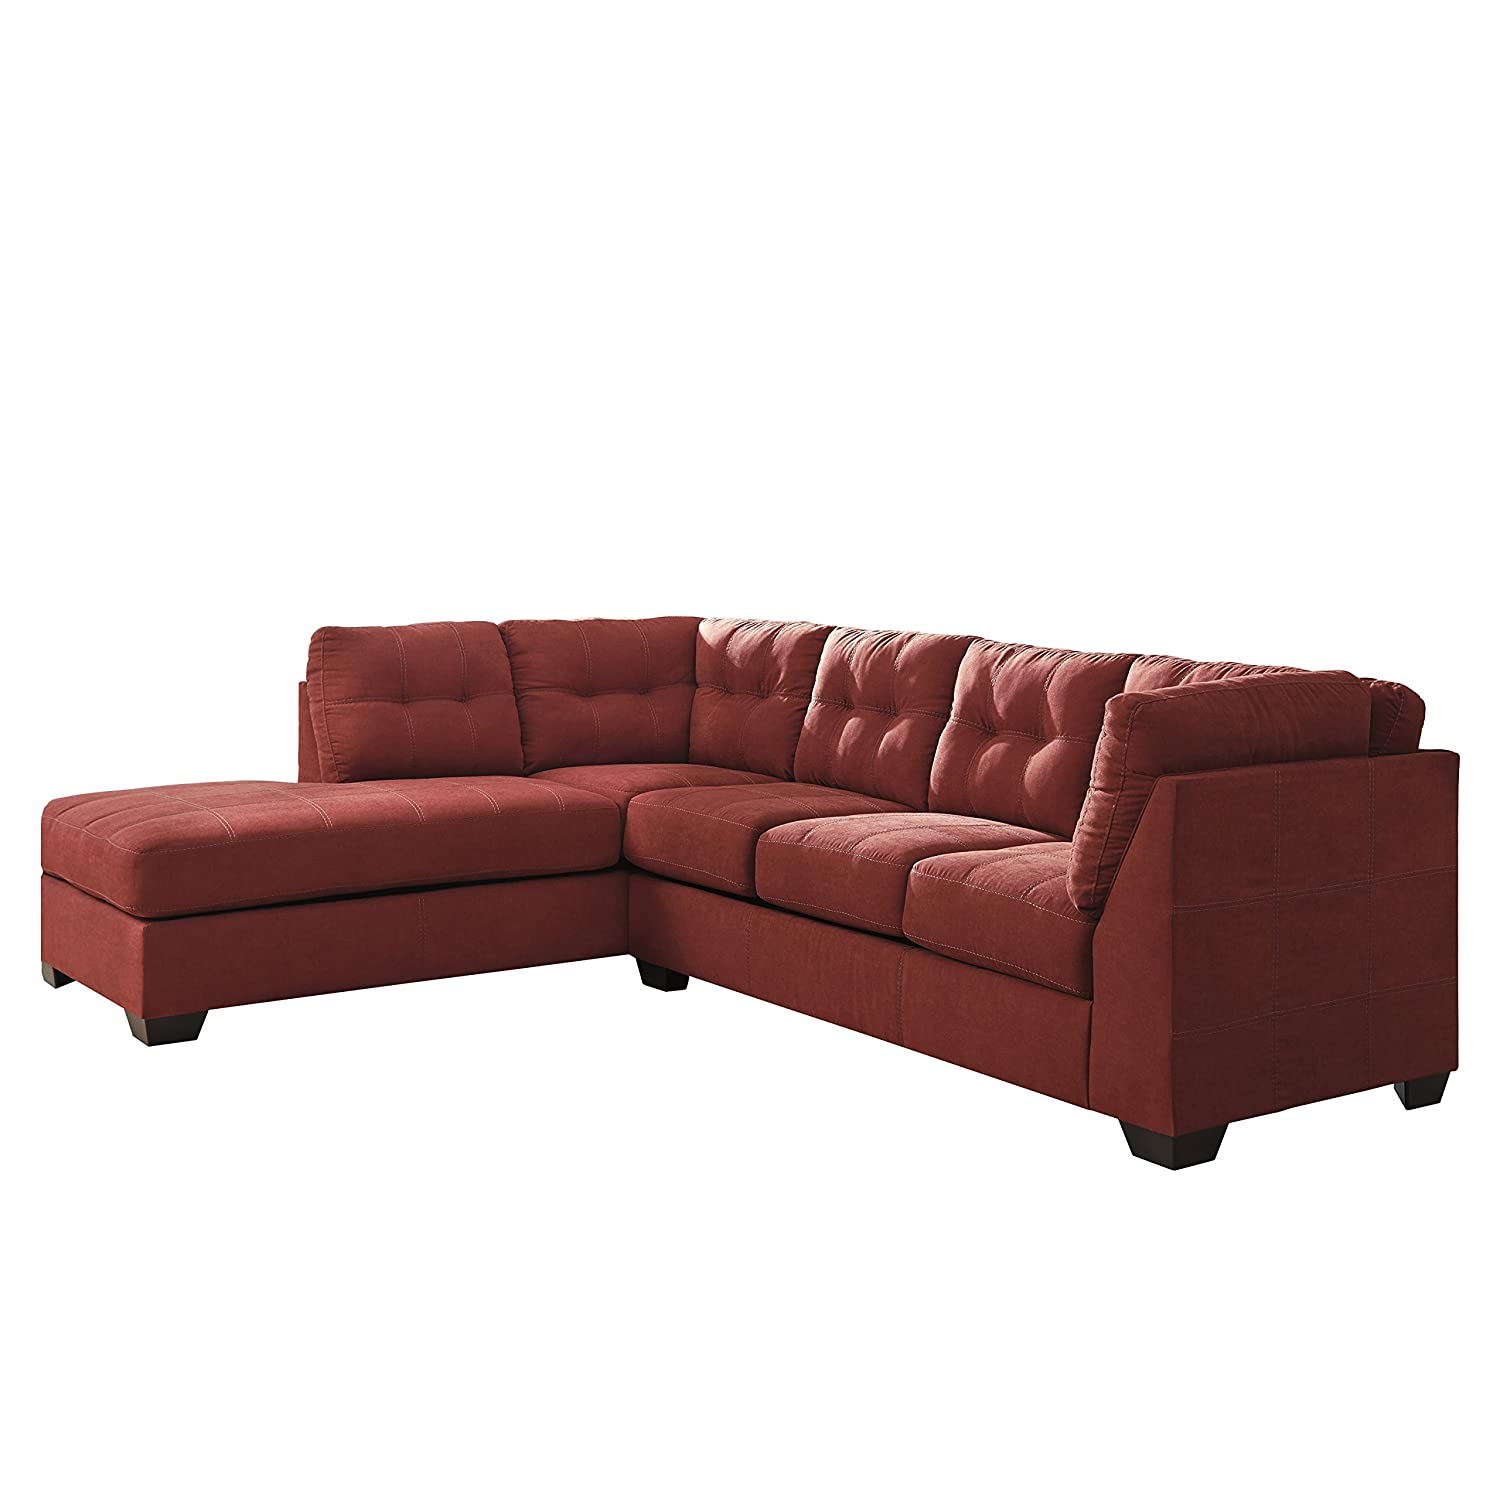 Benchcraft furniture 4piece sectional w armless sofa for Berkline chaise recliner